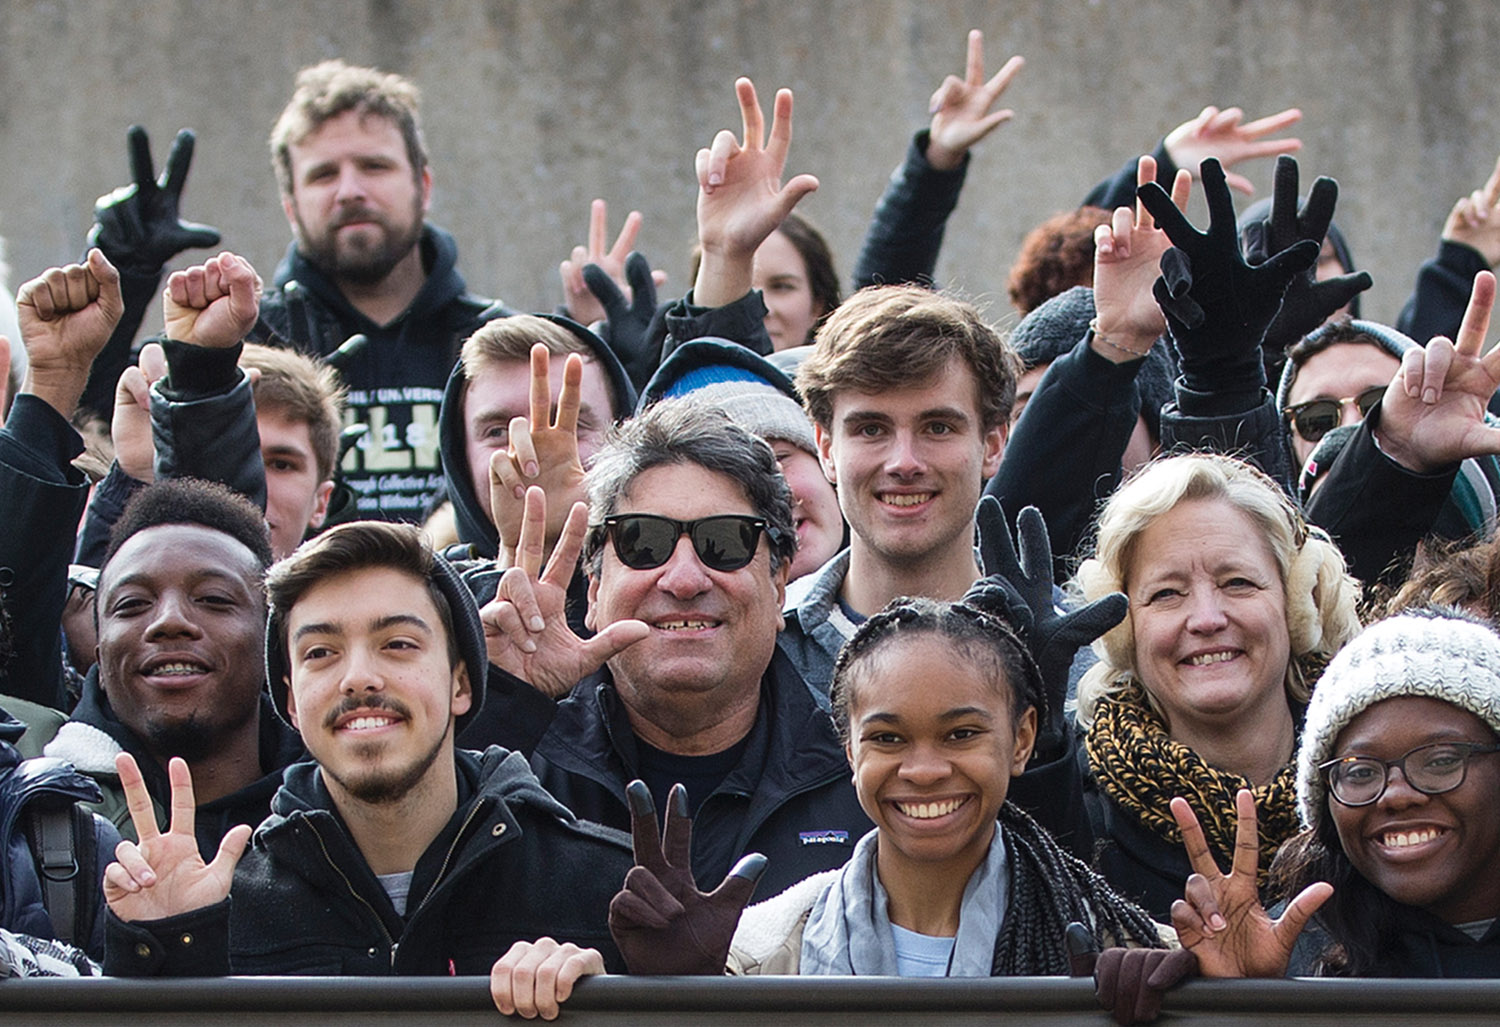 Zeppos joined members of the Vanderbilt community, including Provost and Vice Chancellor for Academic Affairs Susan R. Wente, to commemorate the life and legacy of Rev. Martin Luther King Jr. at the 2018 Nashville Freedom March in January. (JOE HOWELL)